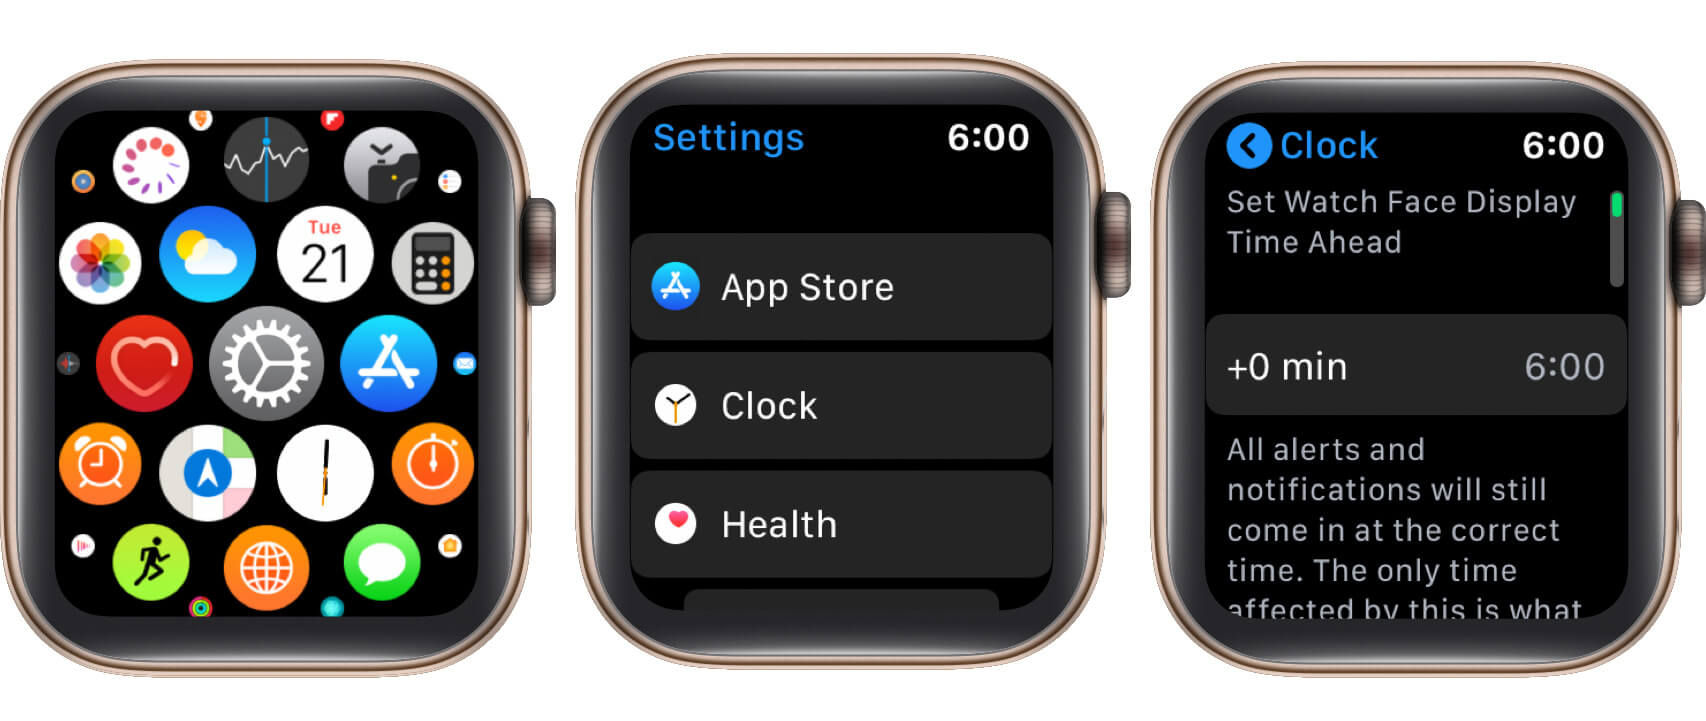 open settings tap on clock and then on time on apple watch